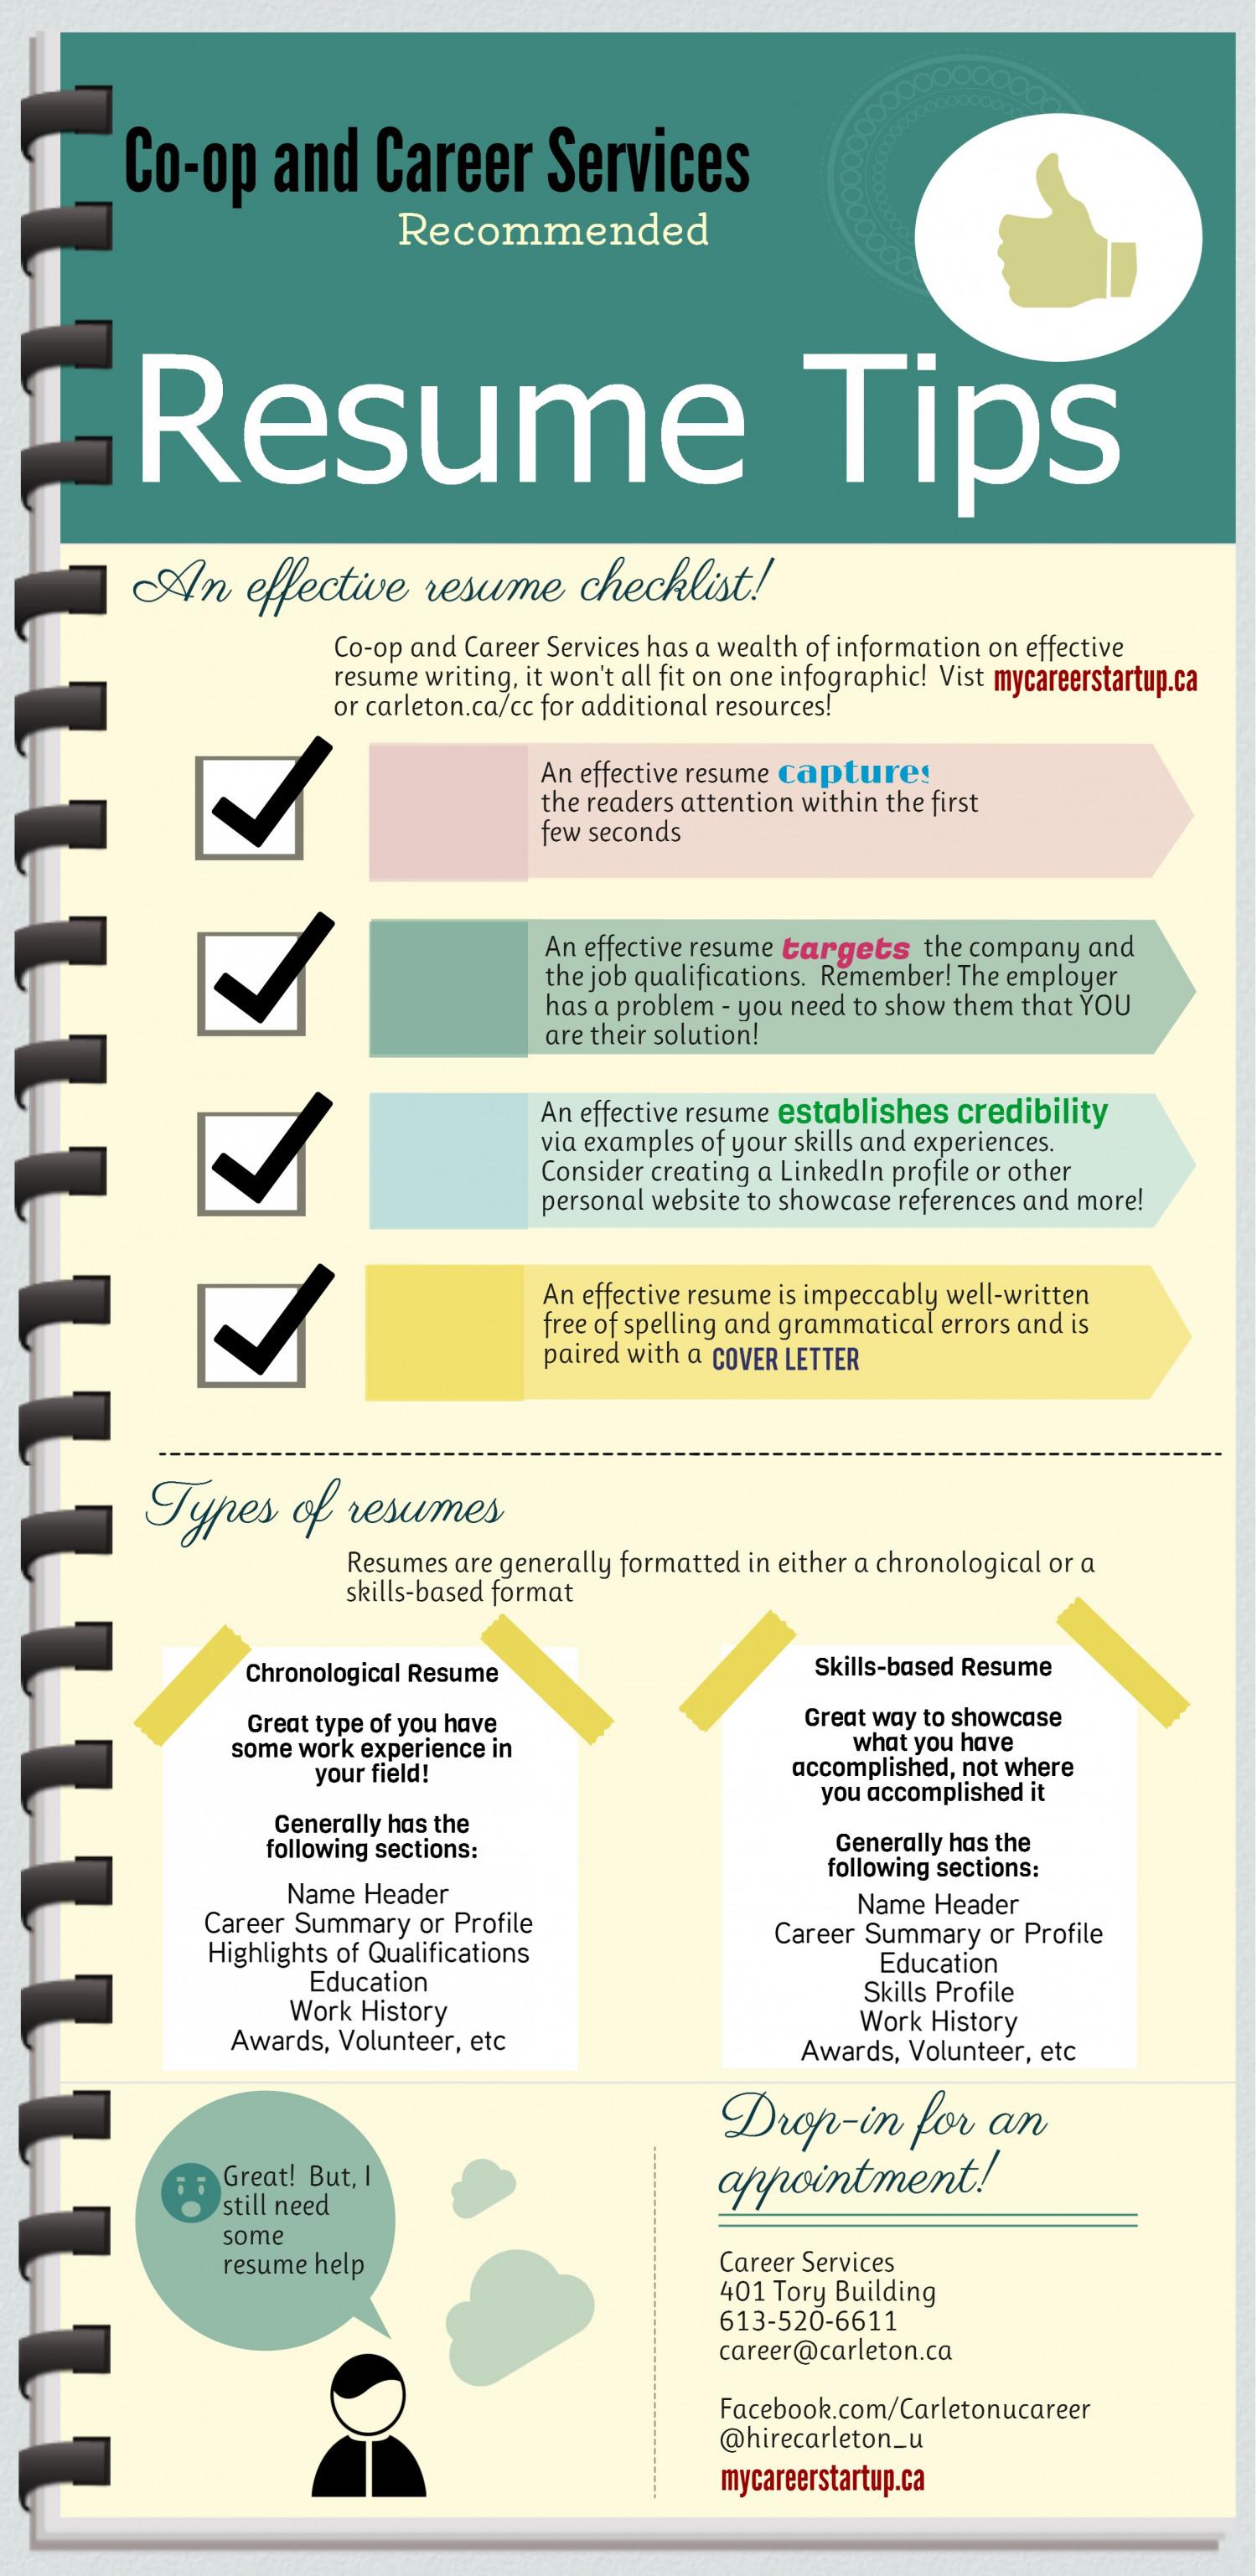 resume tips an effective resume checklists infographic tips resume